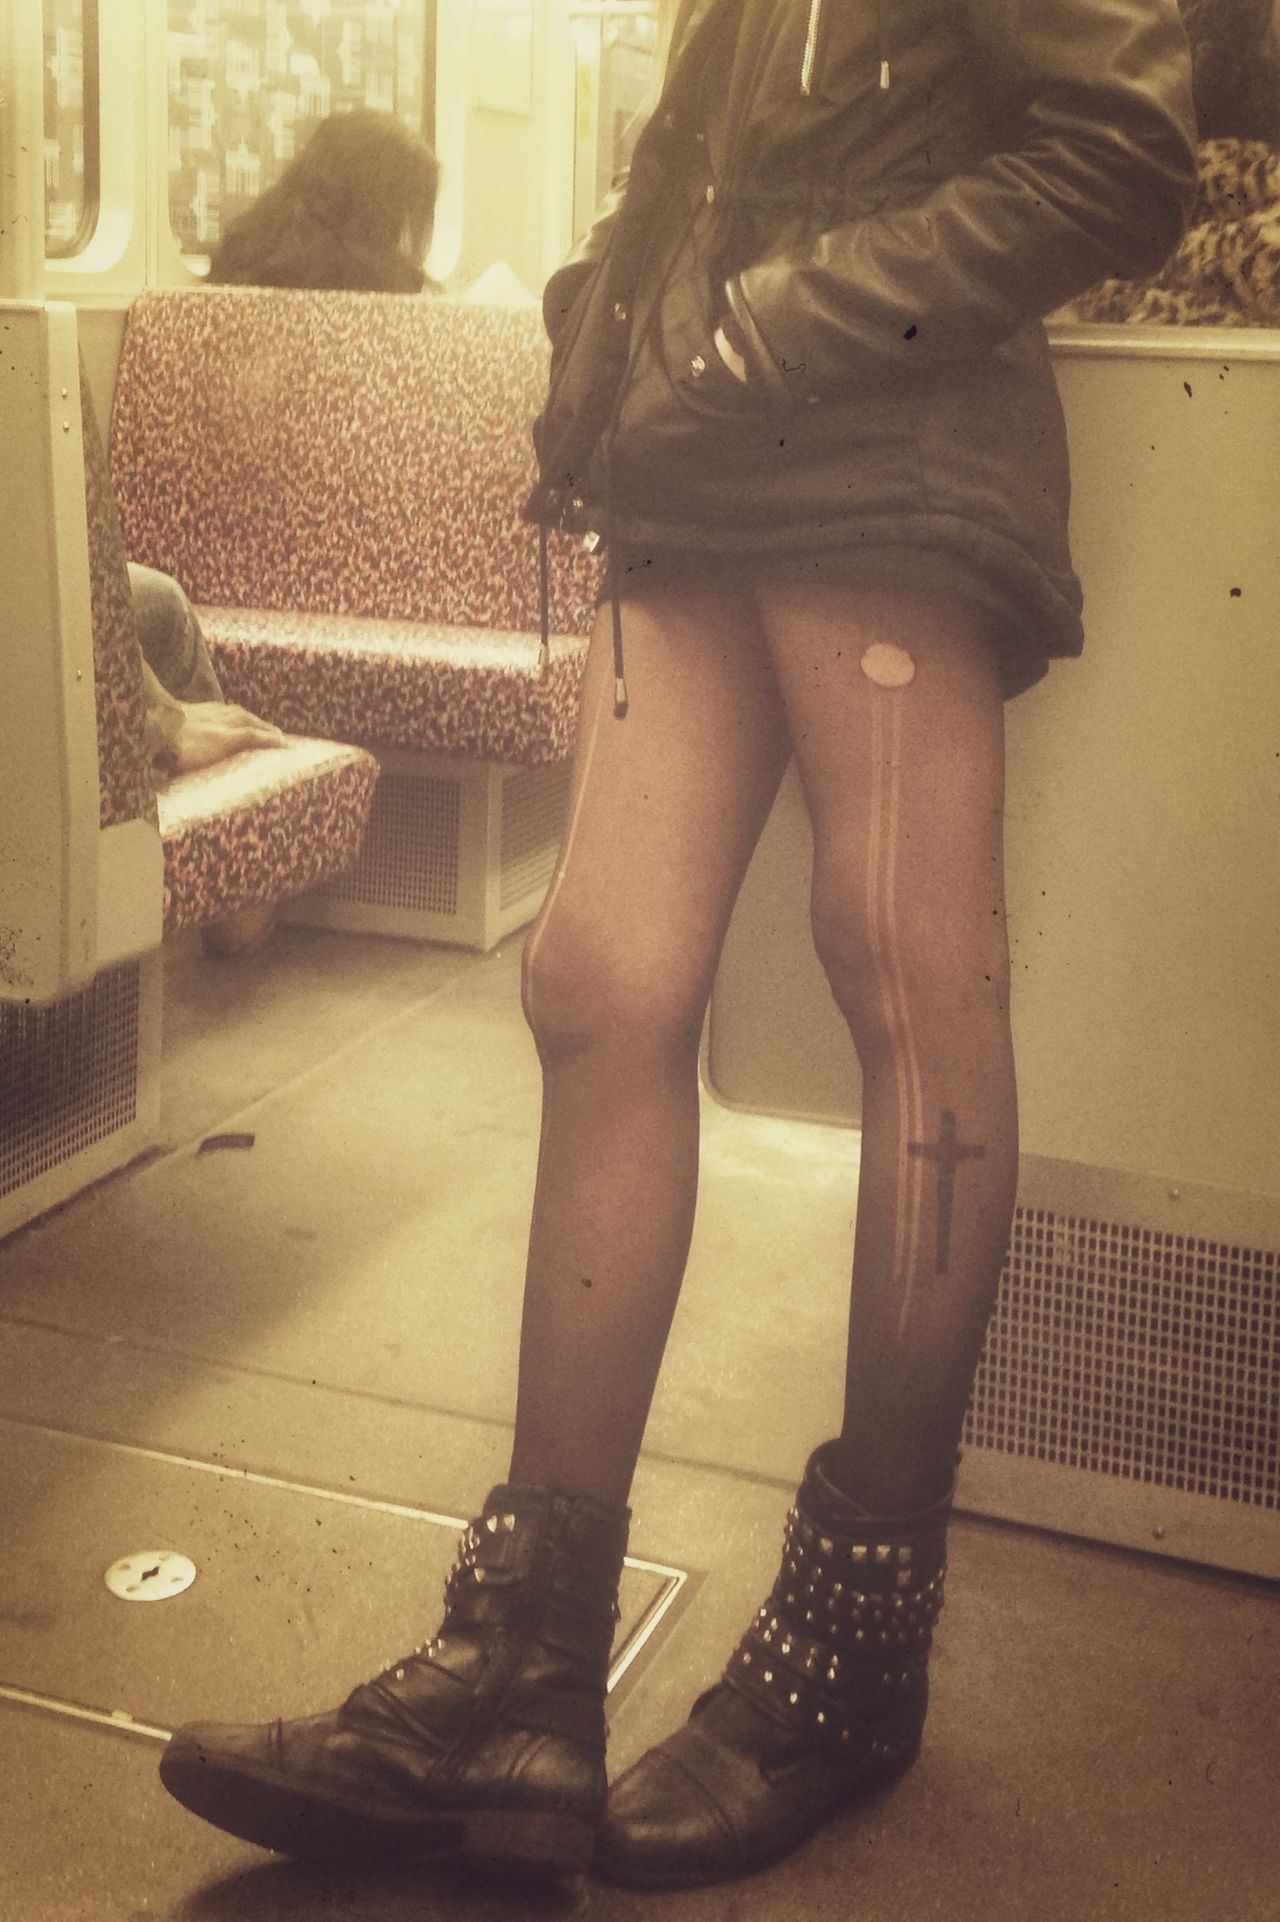 Legs on the train Ubahn Train My Daily Commute